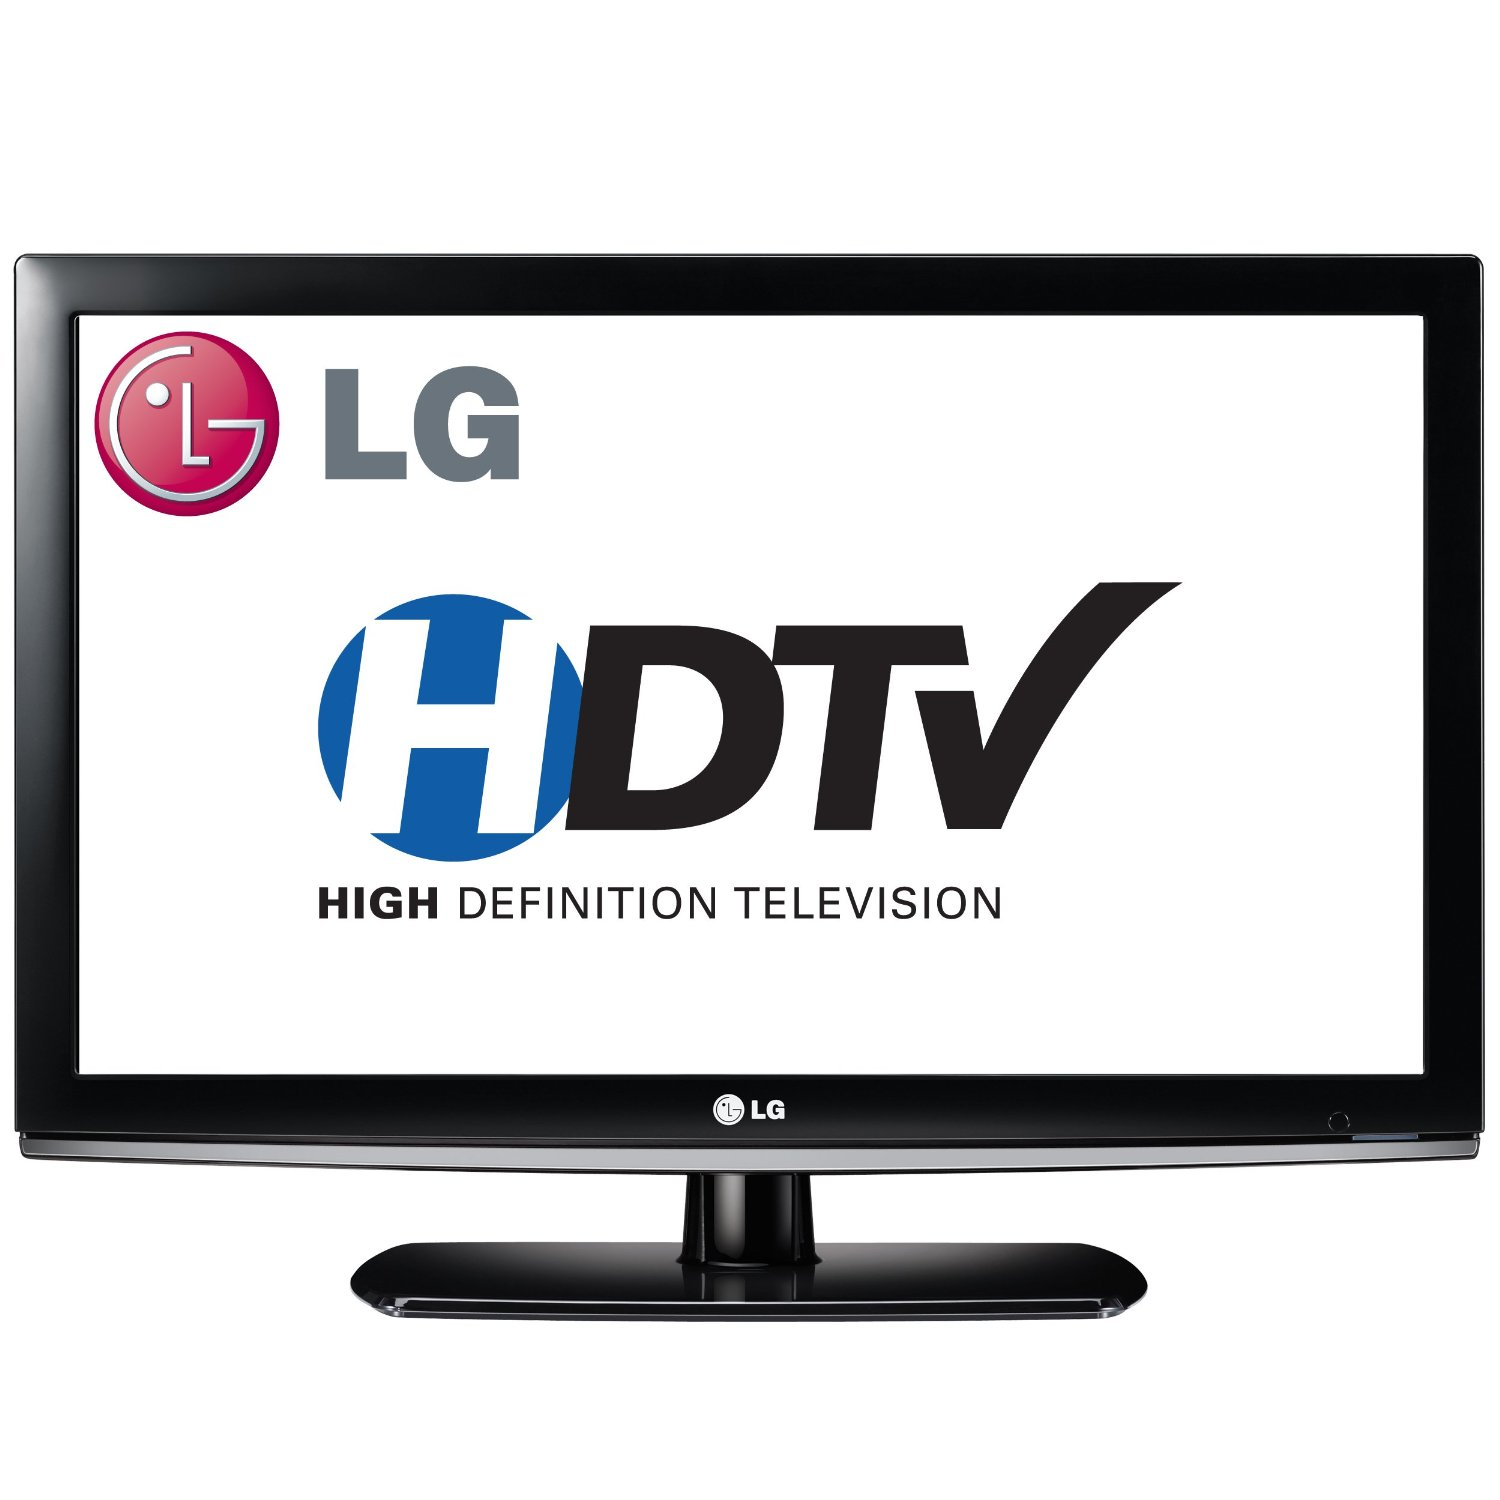 lg hdtv deals on 22 to 55 inch models mobile venue. Black Bedroom Furniture Sets. Home Design Ideas